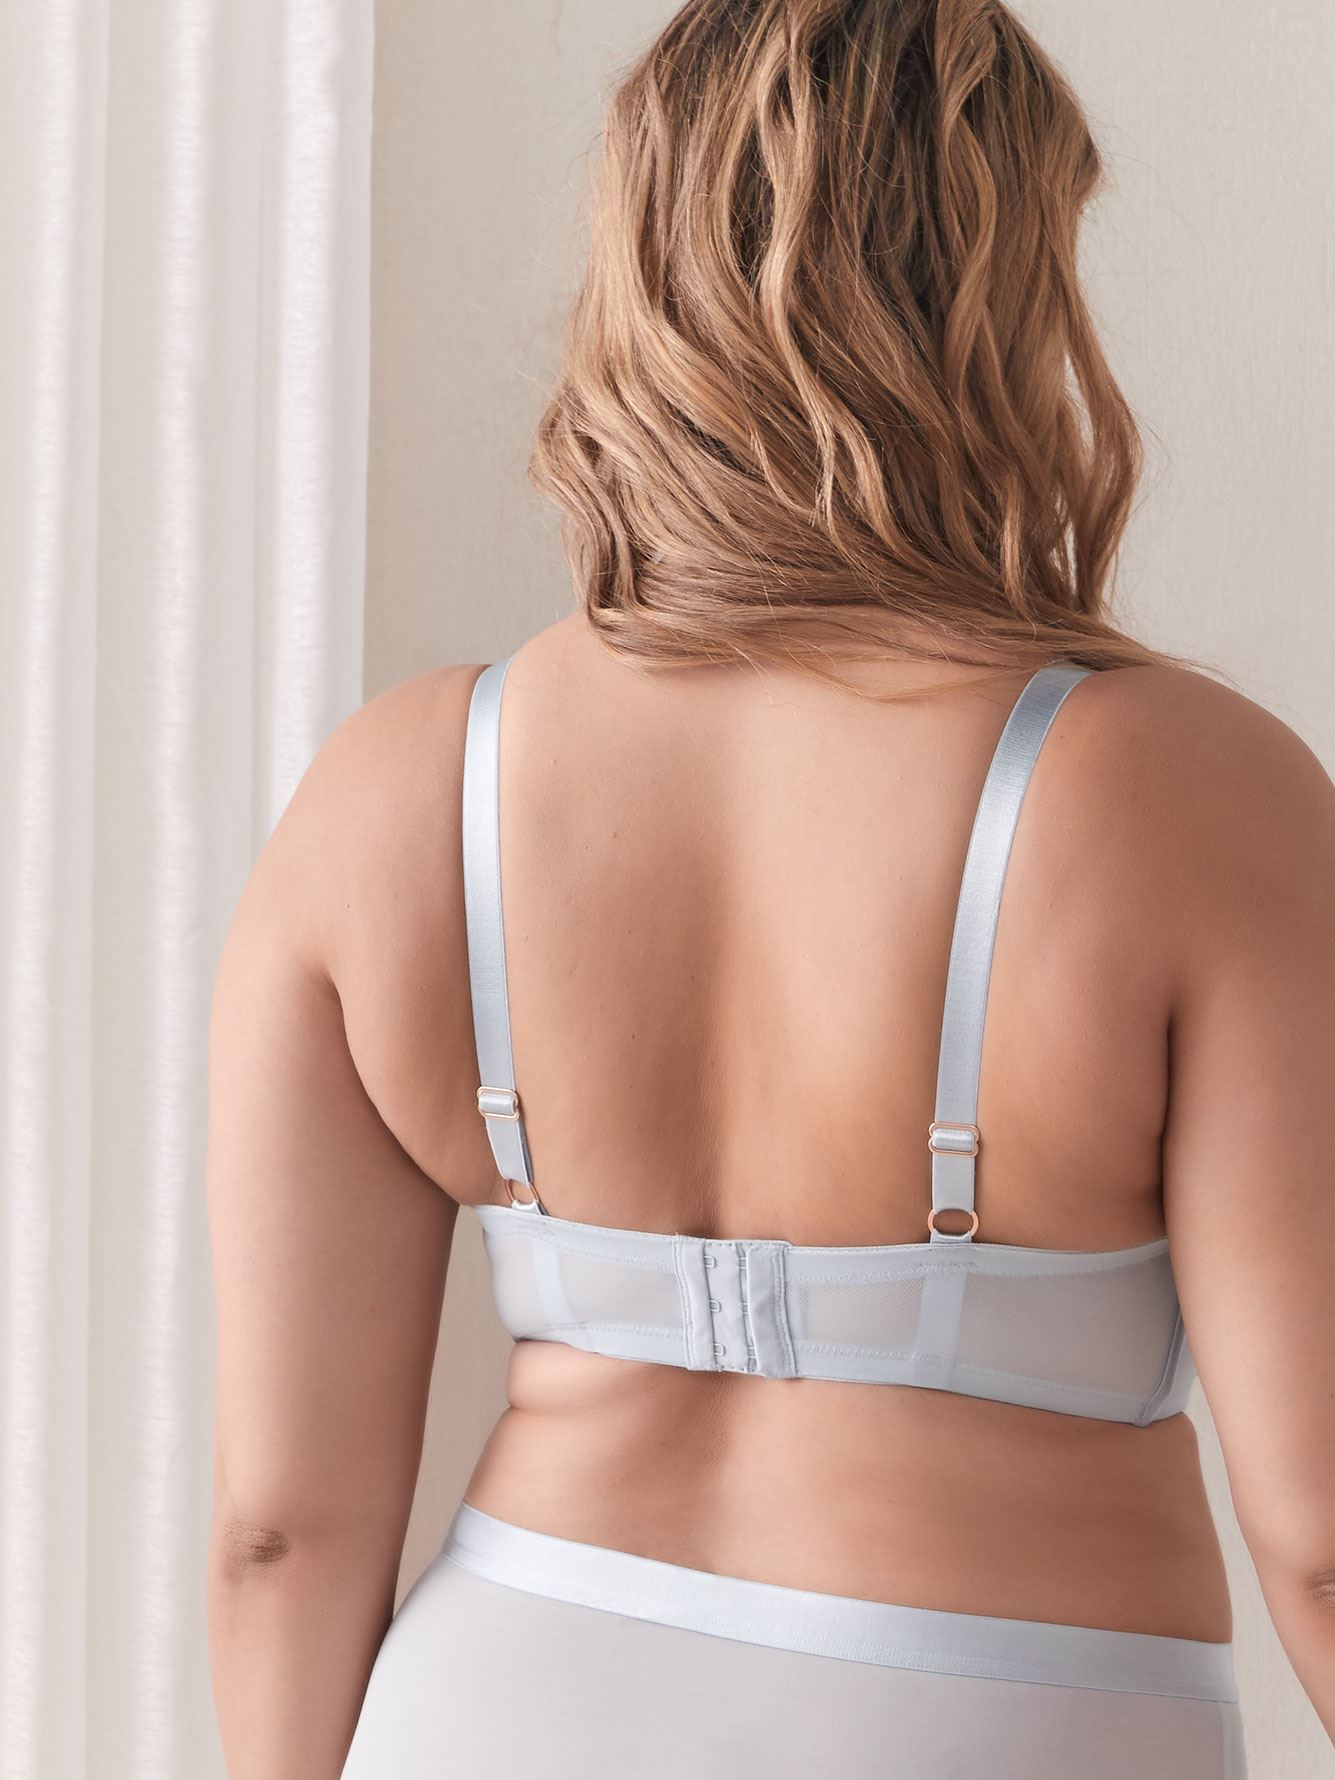 Demi Cup Diva Bra with Strap Detail, G & H Cups - Ashley Graham